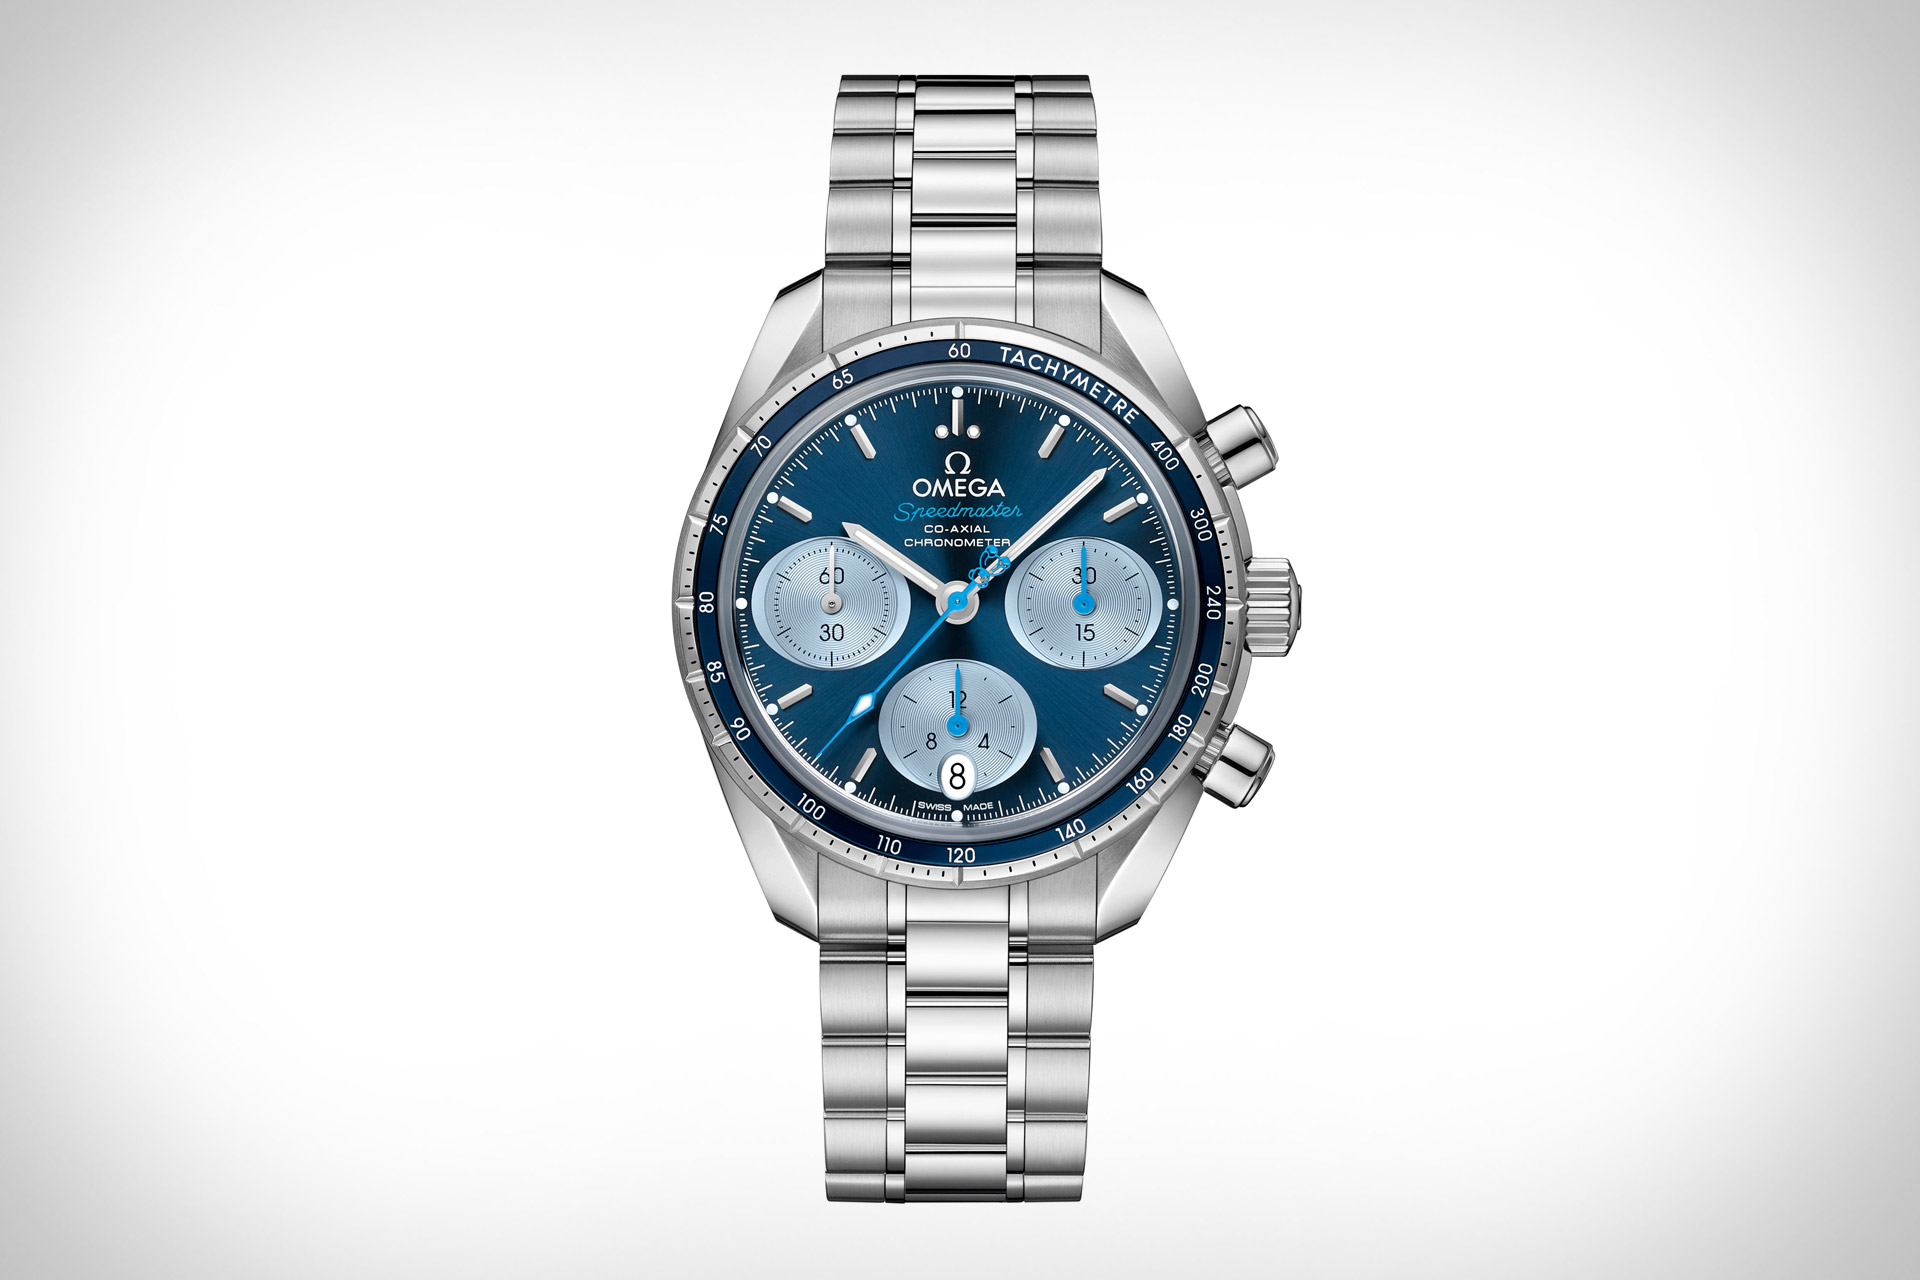 Omega x Orbis Speedmaster Chronograph Watch